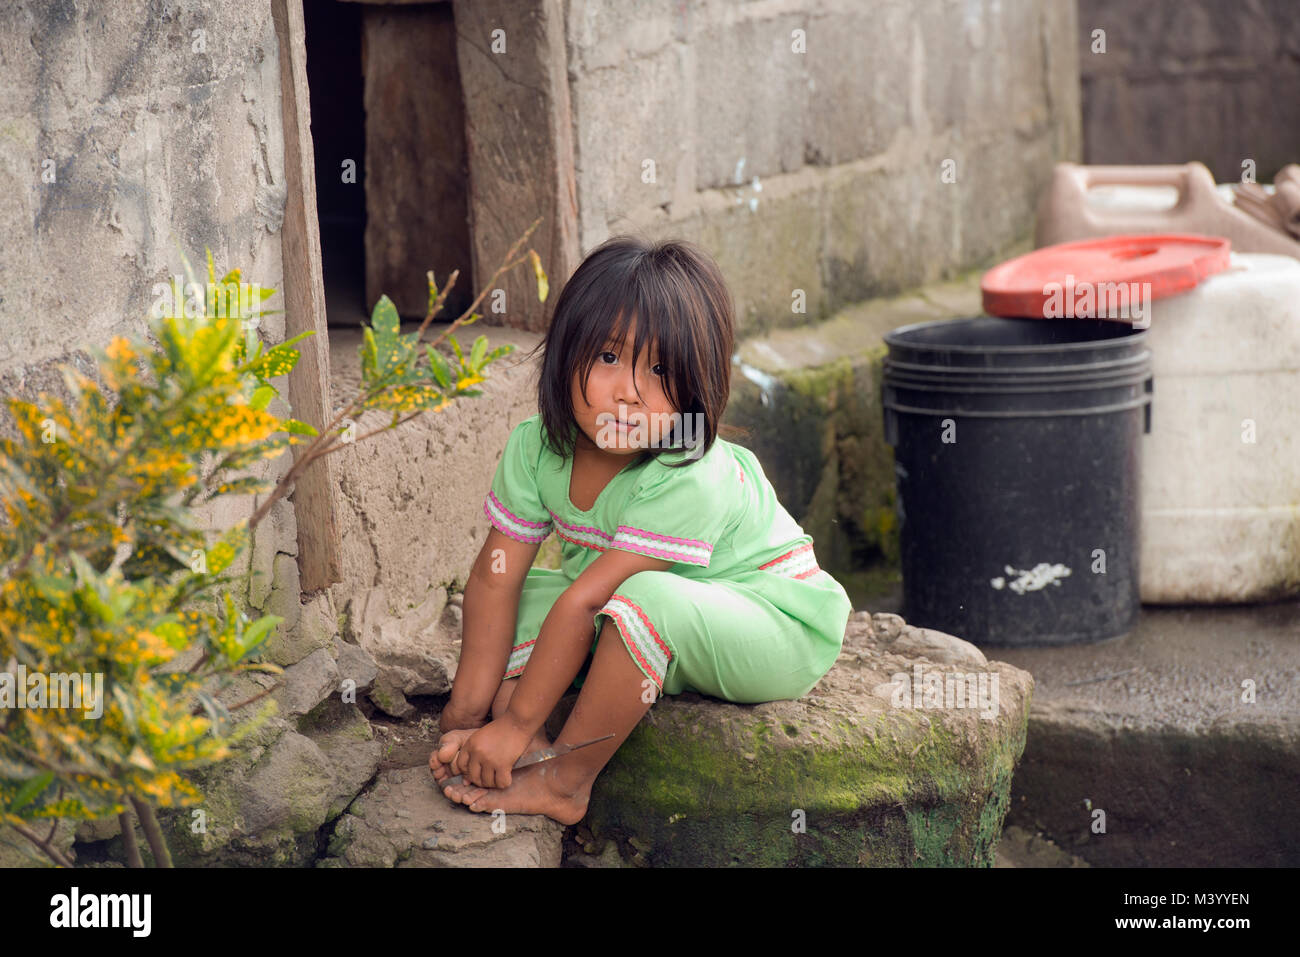 A young Ngäbe-Bugle girl in traditional dress, Boquete, Panama. - Stock Image